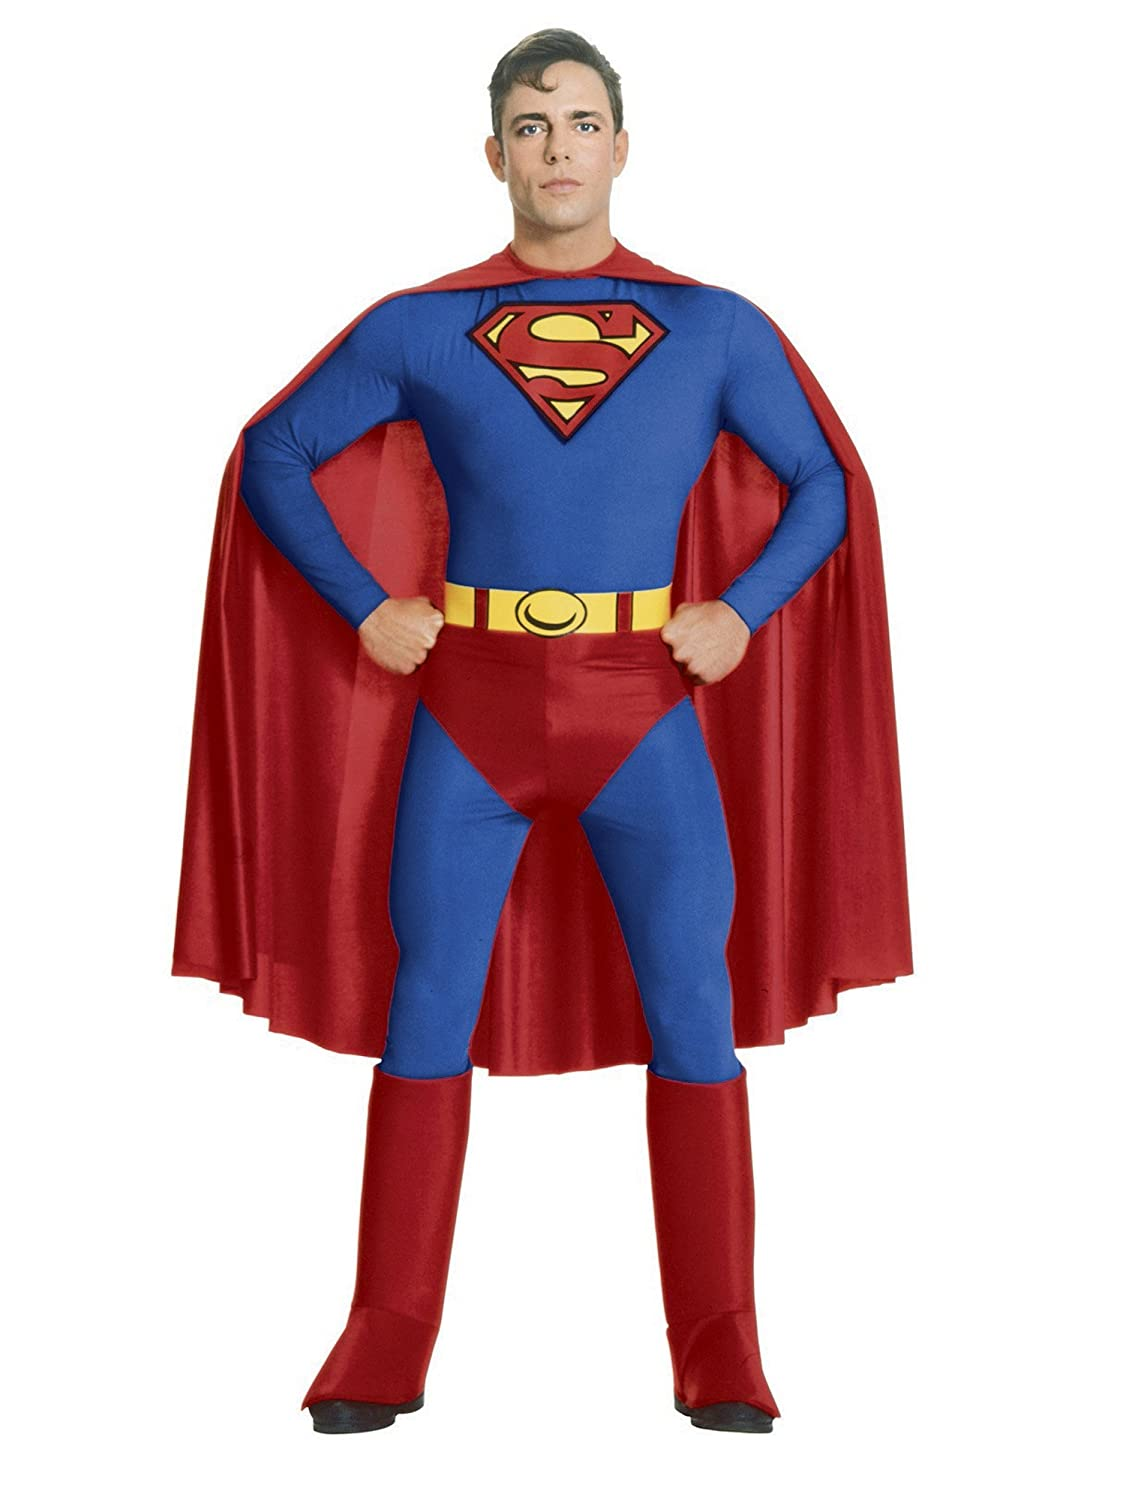 Amazon.com: DC Comics Superman Costume: Toys & Games